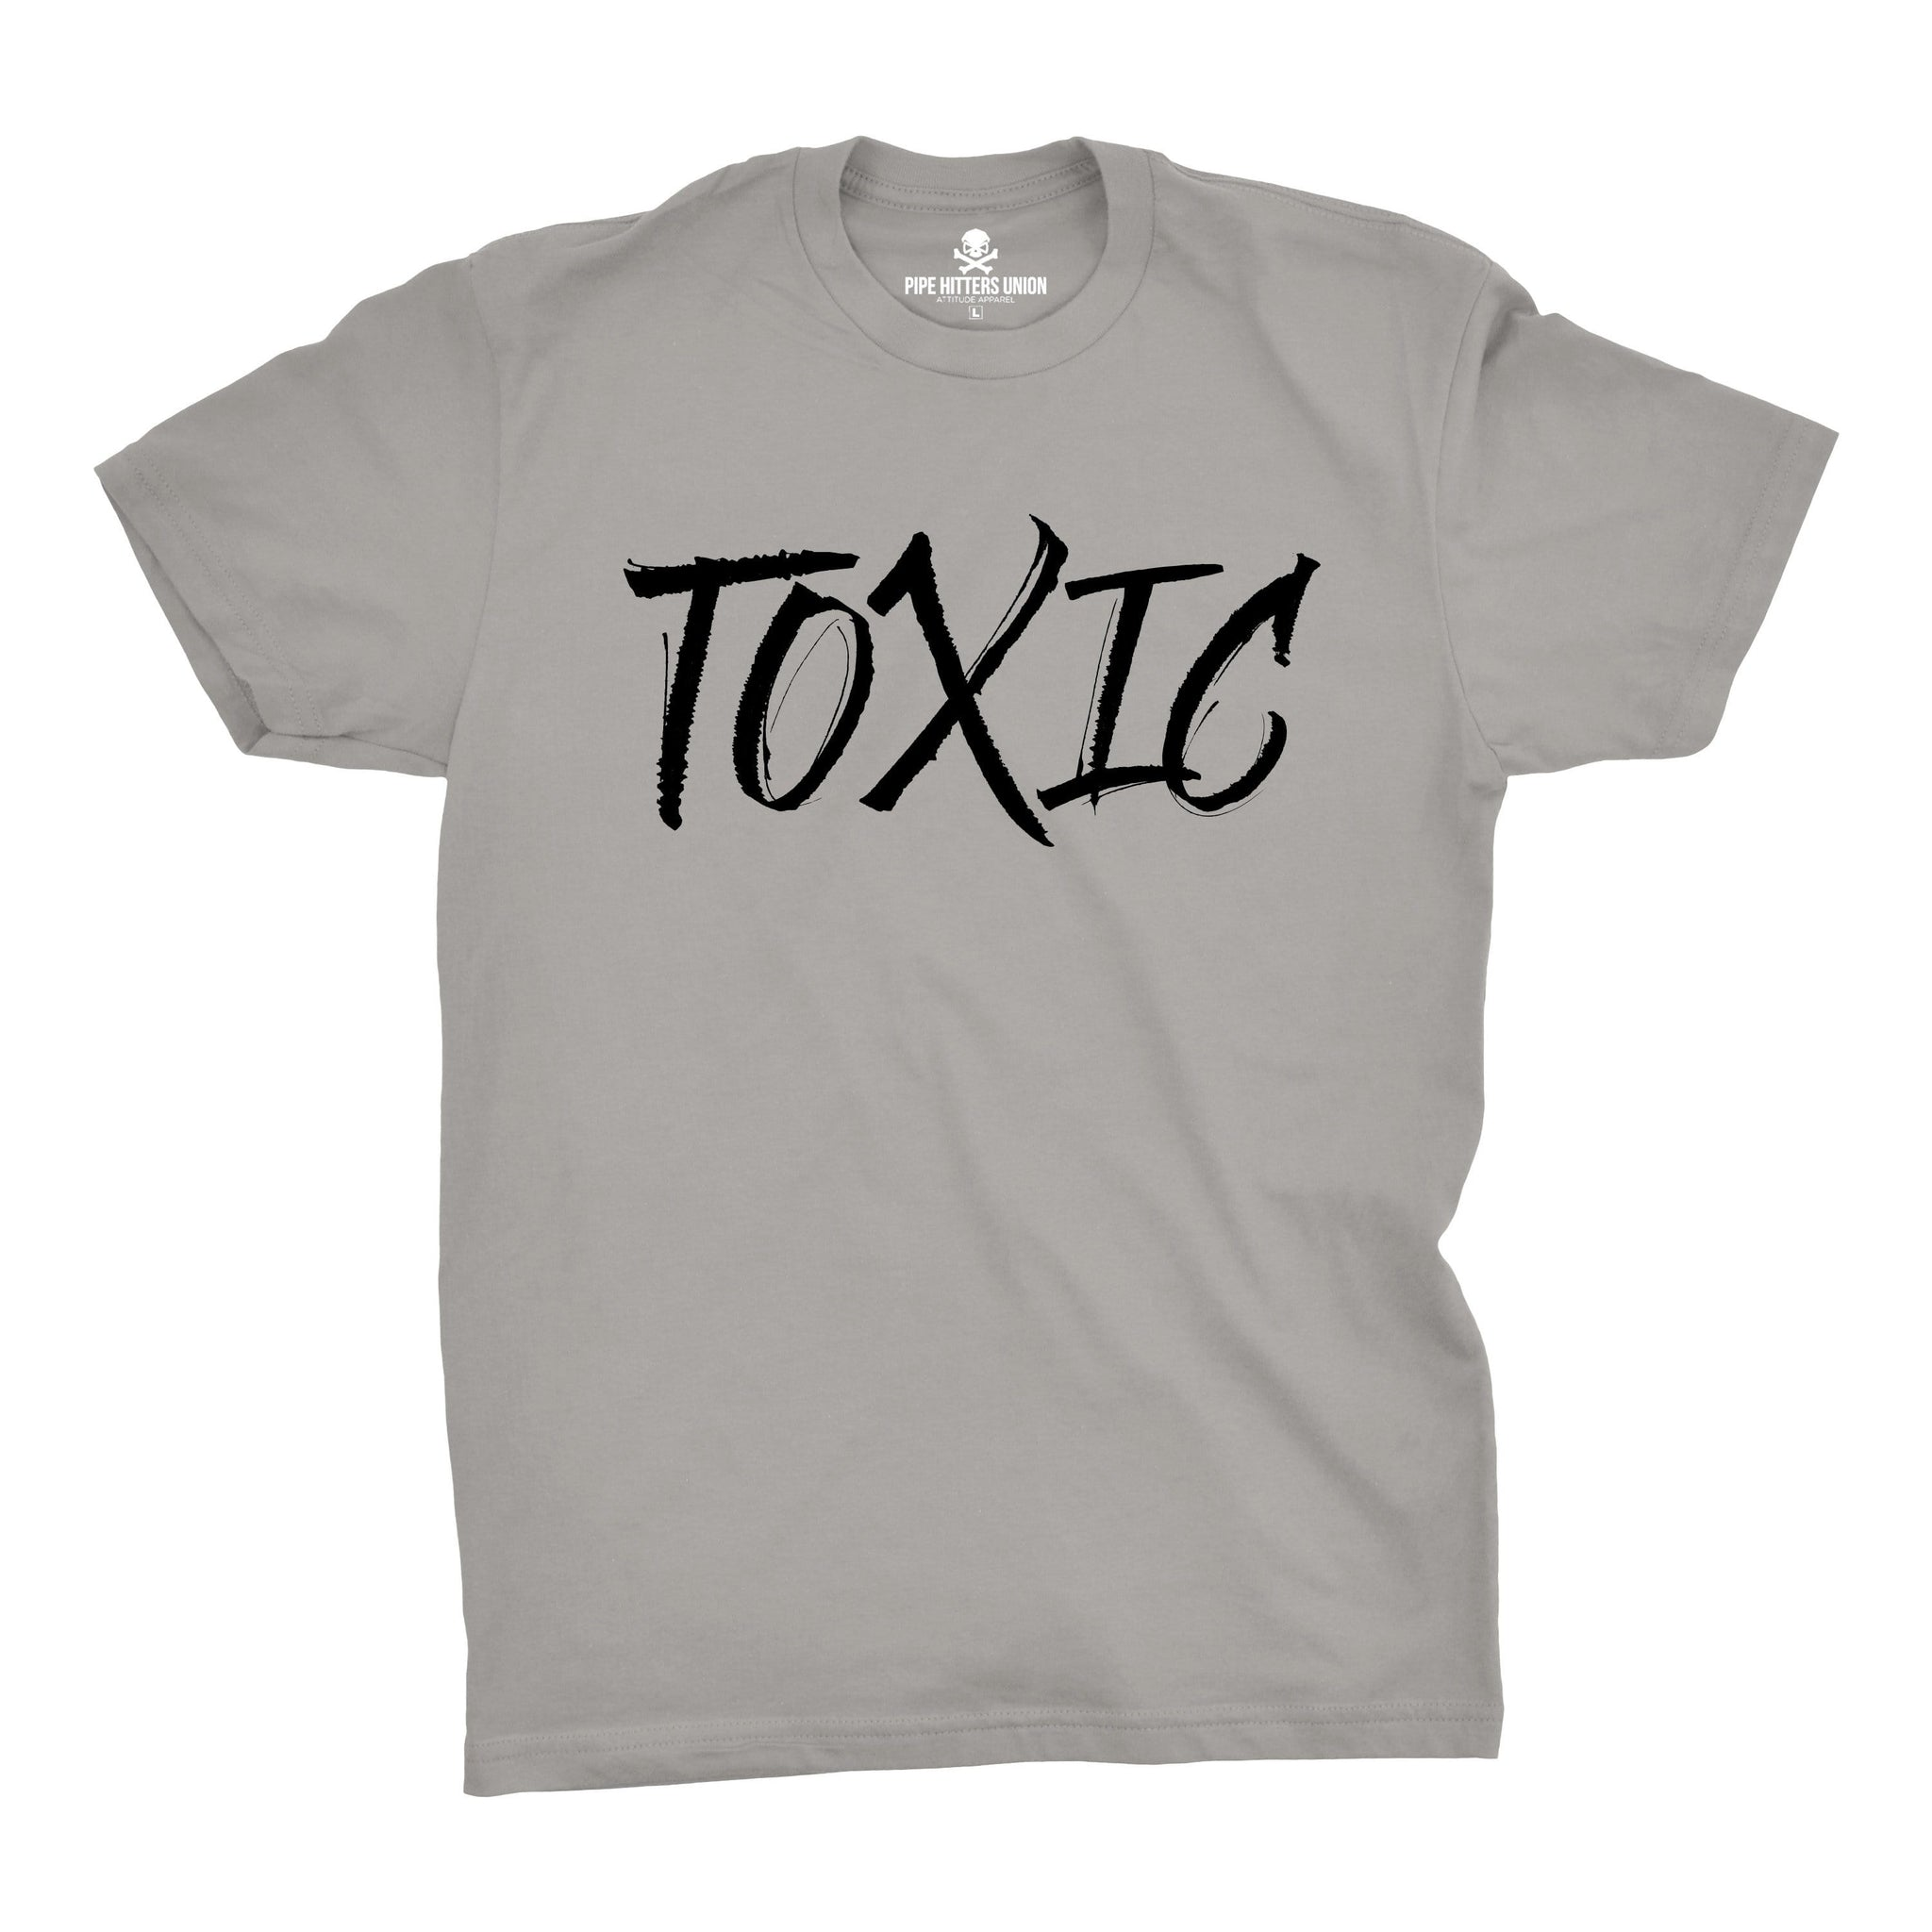 Toxic - Grey - T-Shirts - Pipe Hitters Union